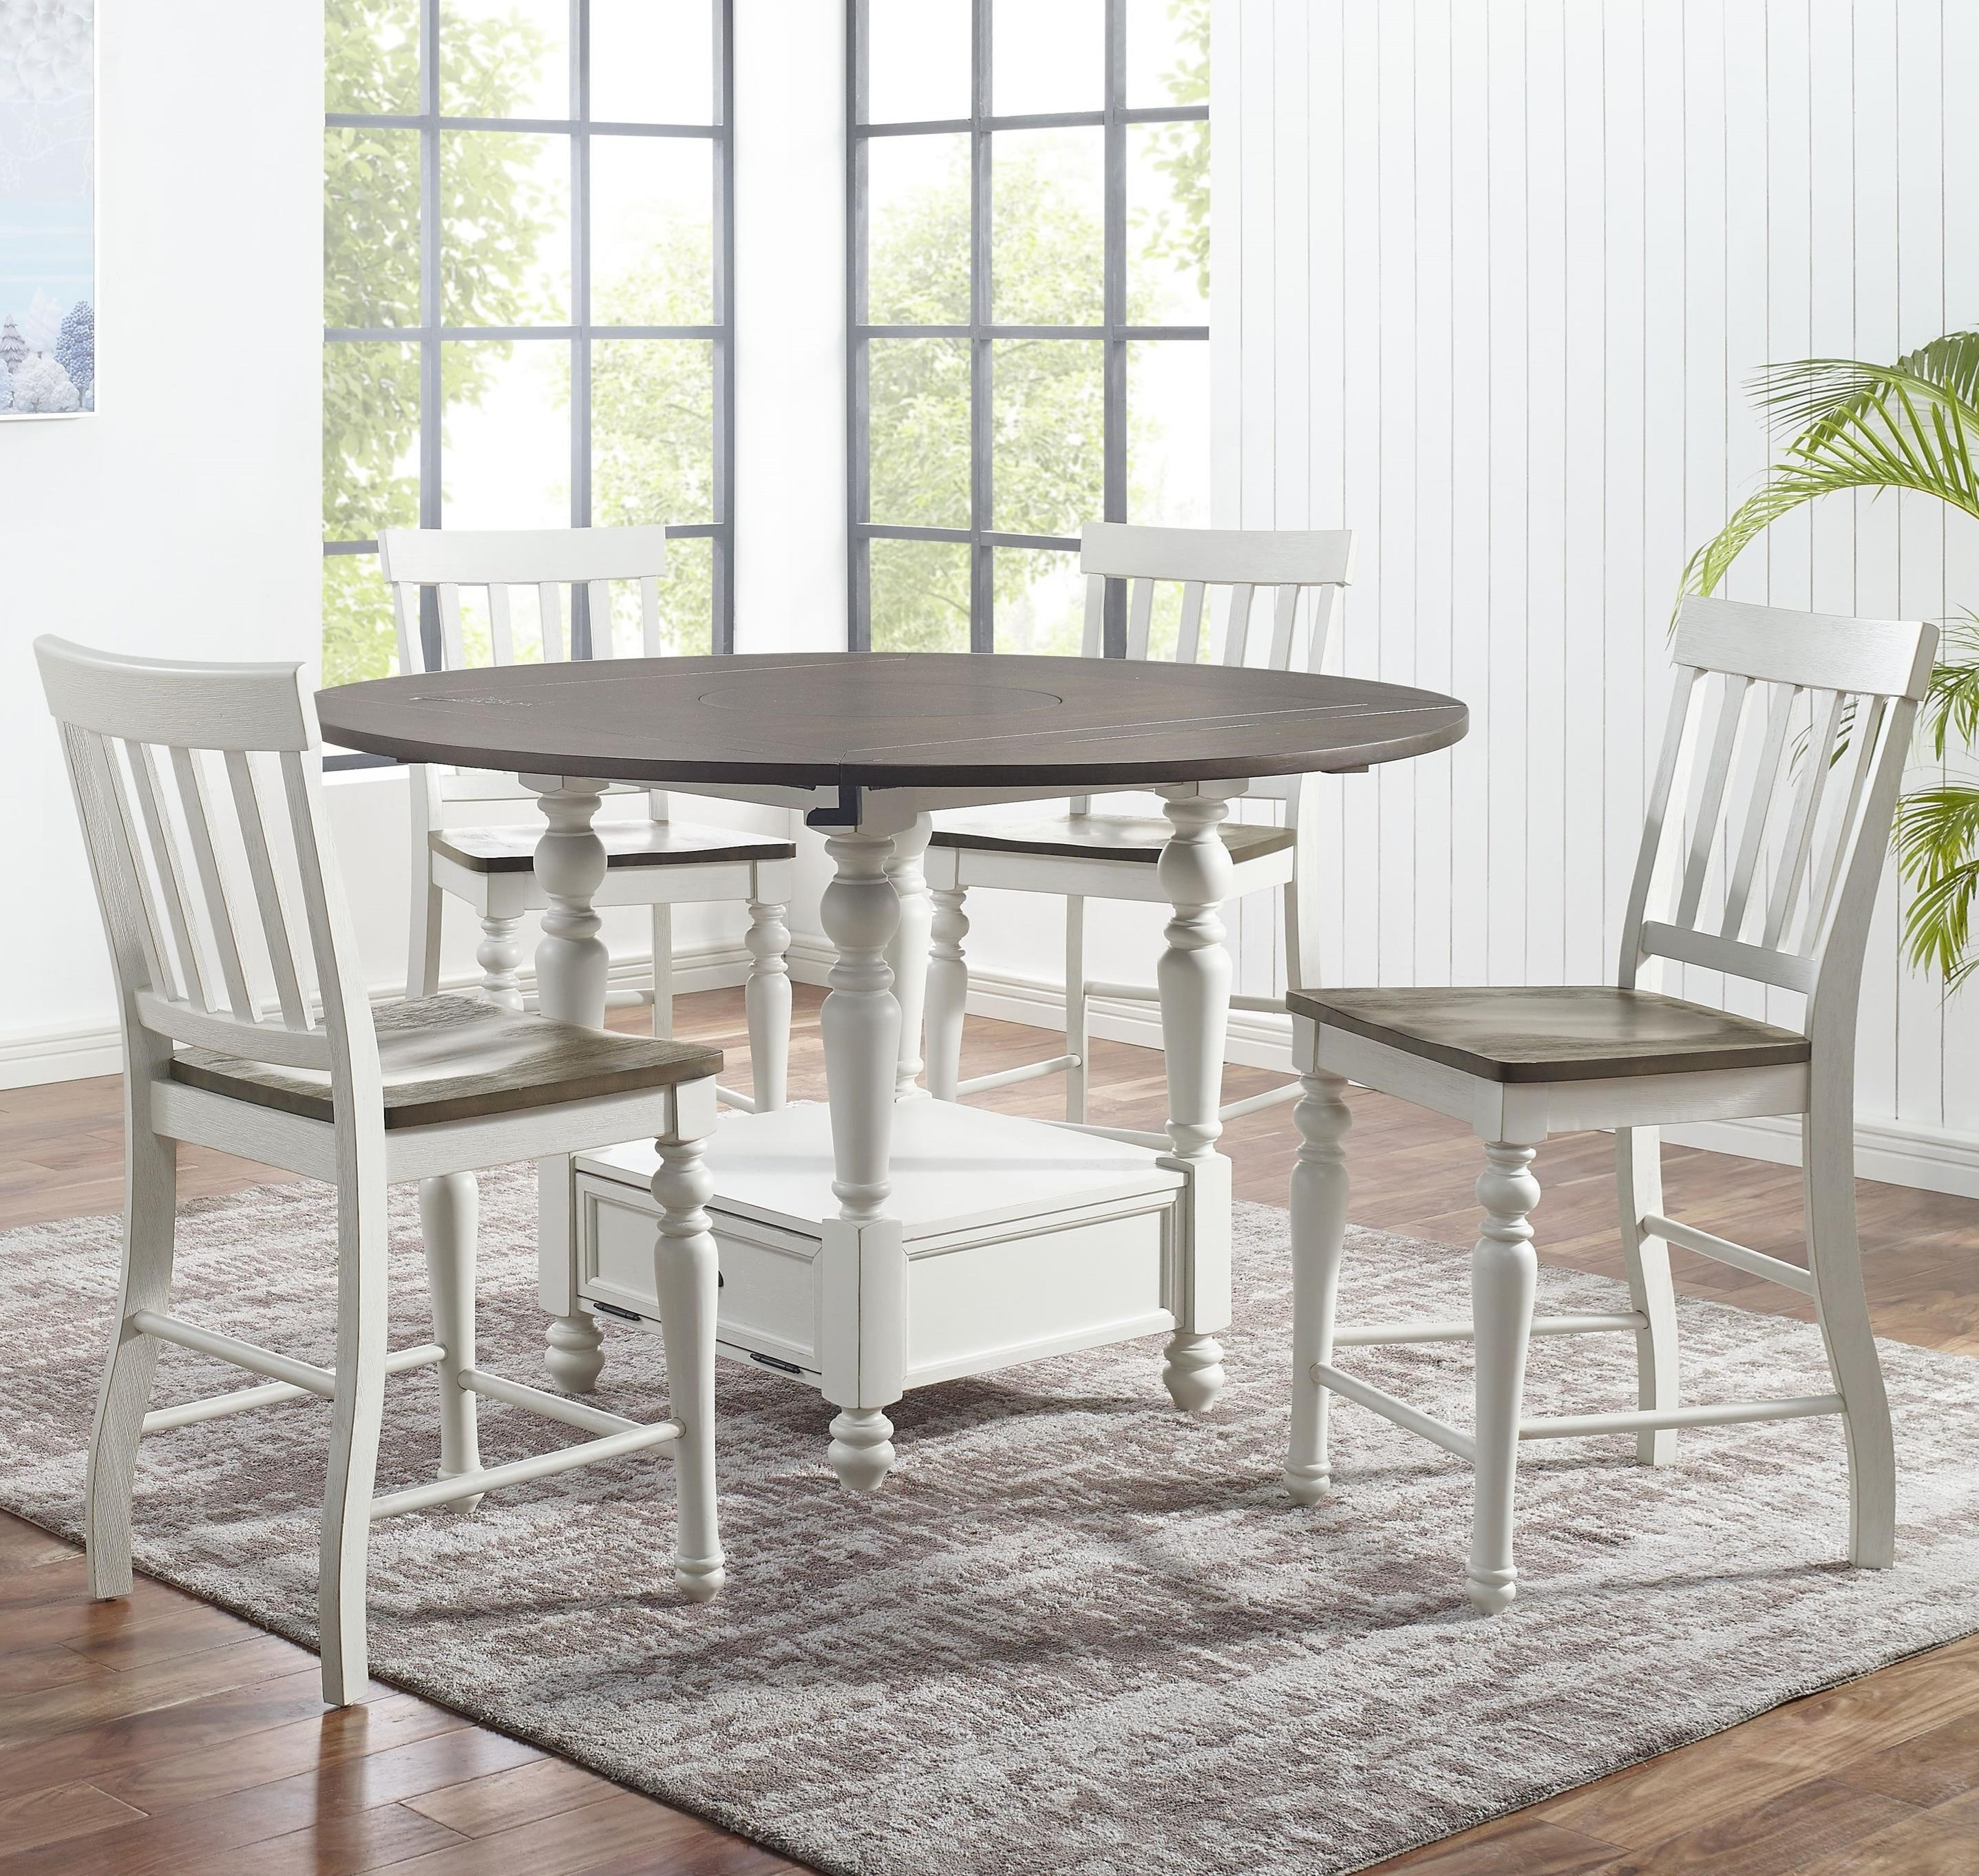 Joanna 5-Piece Round Counter Table Set by Steve Silver at Standard Furniture